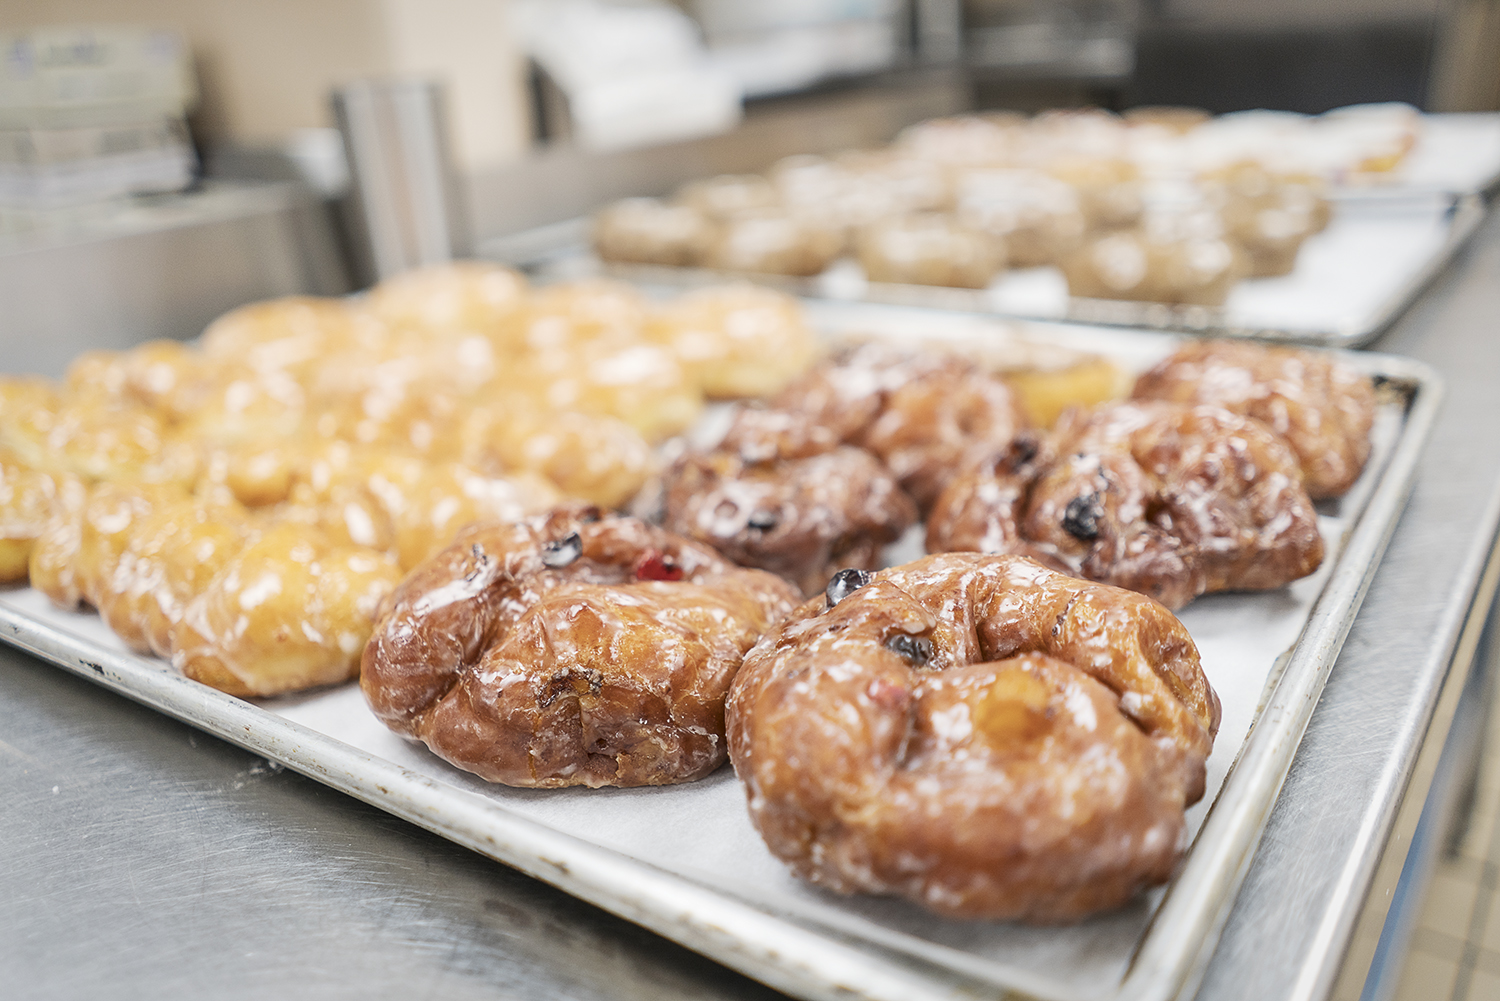 Flint, MI - Thursday, January 4, 2018: Fresh donuts await to be delivered by Blueline Donuts at Carriage Town Ministries.Tim Galloway for FlintSide